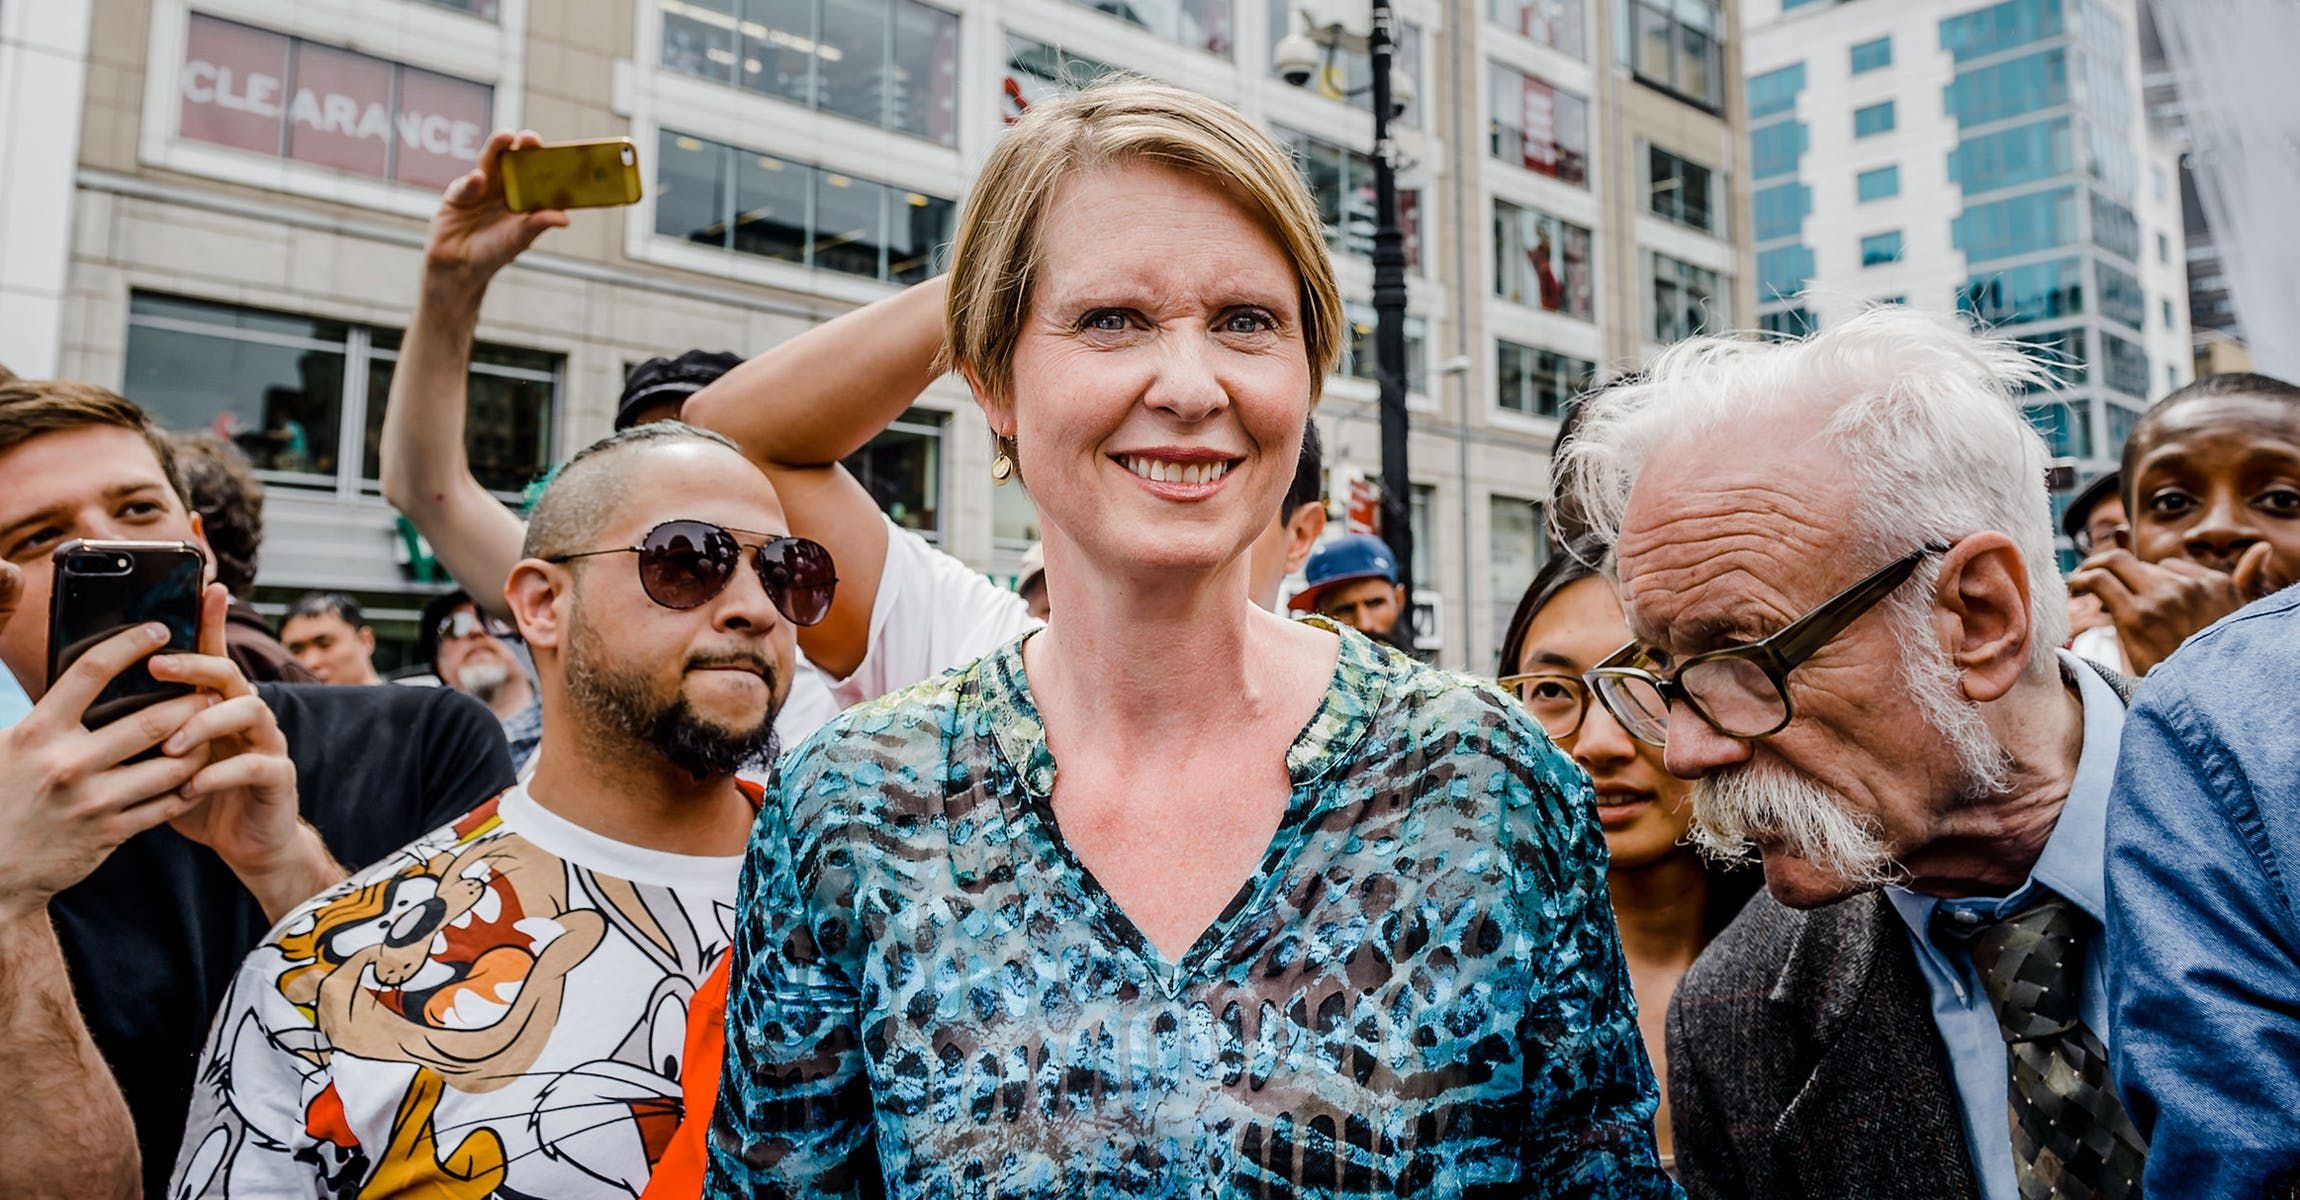 File:New York City 2018 May 5. Cynthia Nixon and Dana Beal.jpg